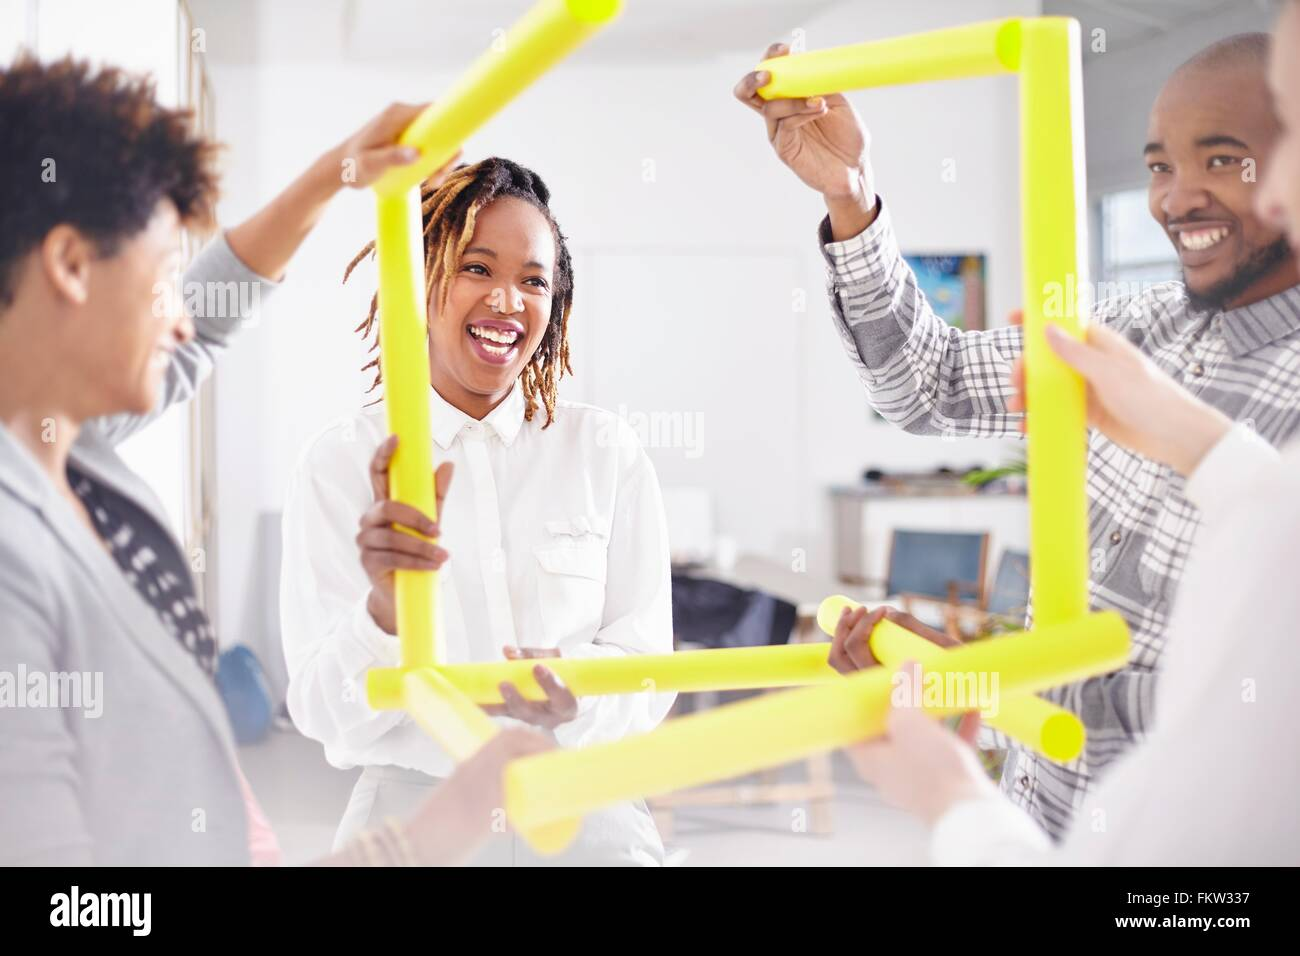 Colleagues in team building task holding yellow rubes smiling - Stock Image